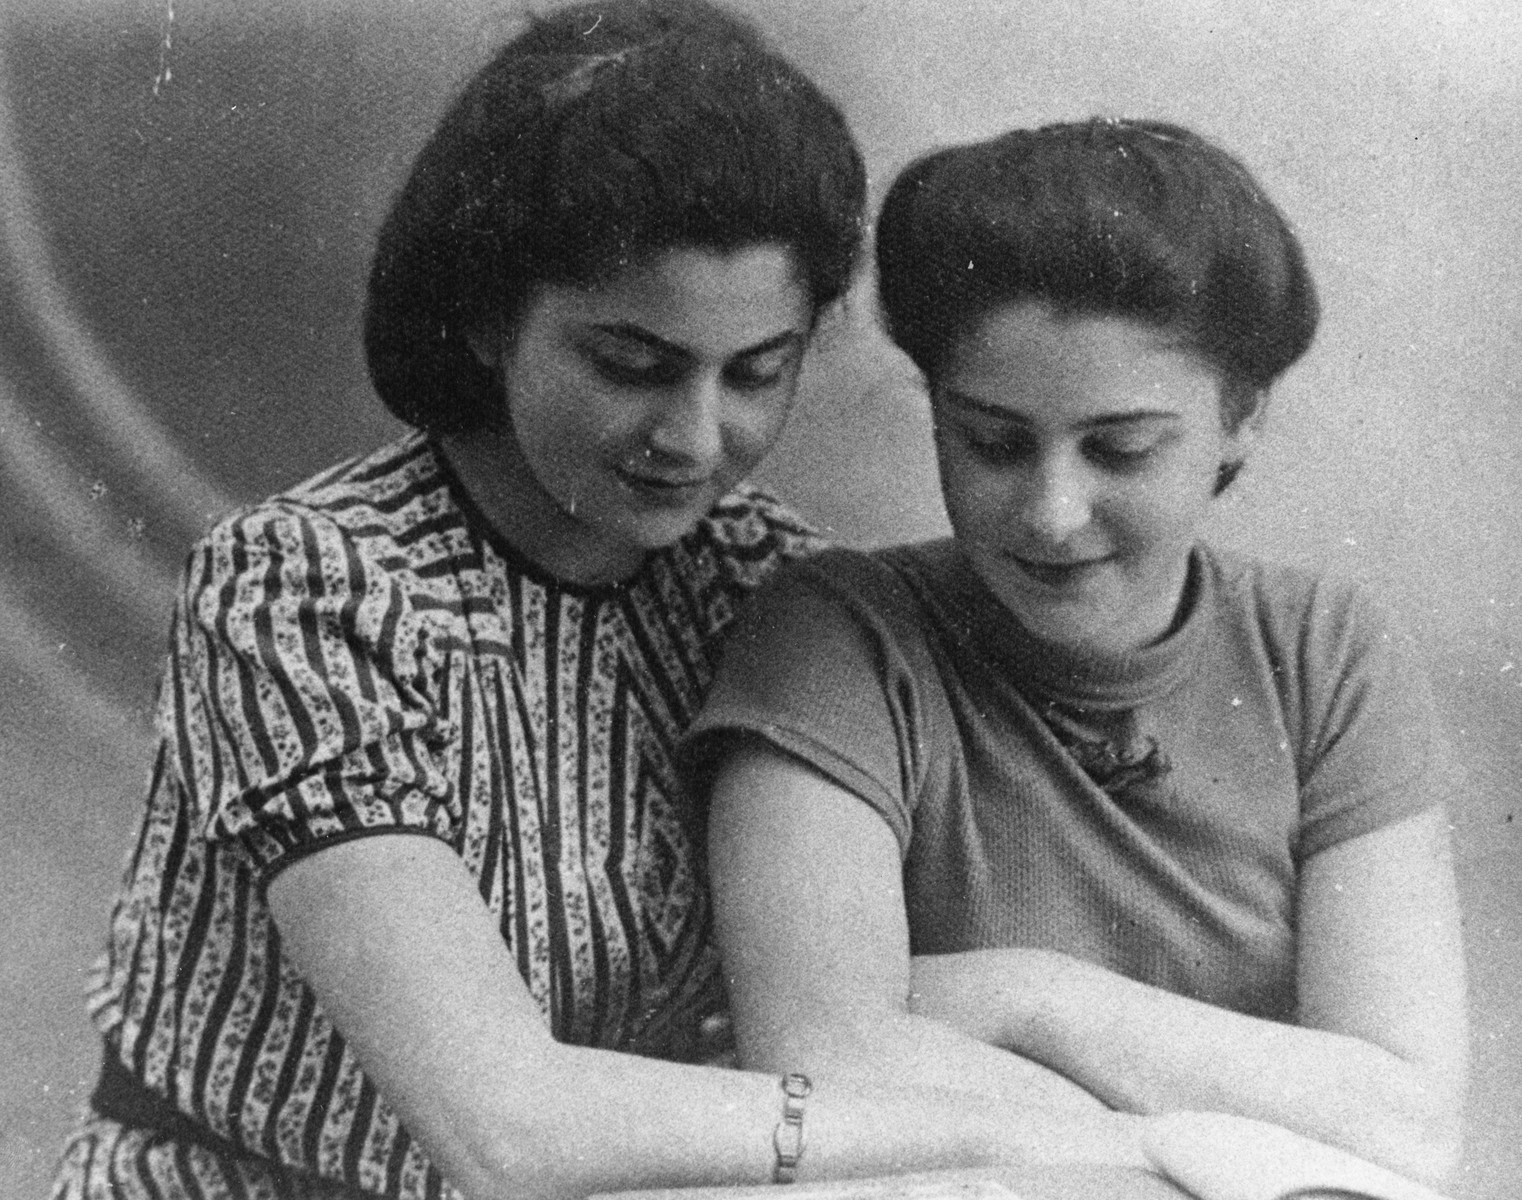 Portrait of Jewish DP sisters.  Pictured left to right are Hania (later Anna Wilson) and Rozalia (Krysia, later Chris Lerman).